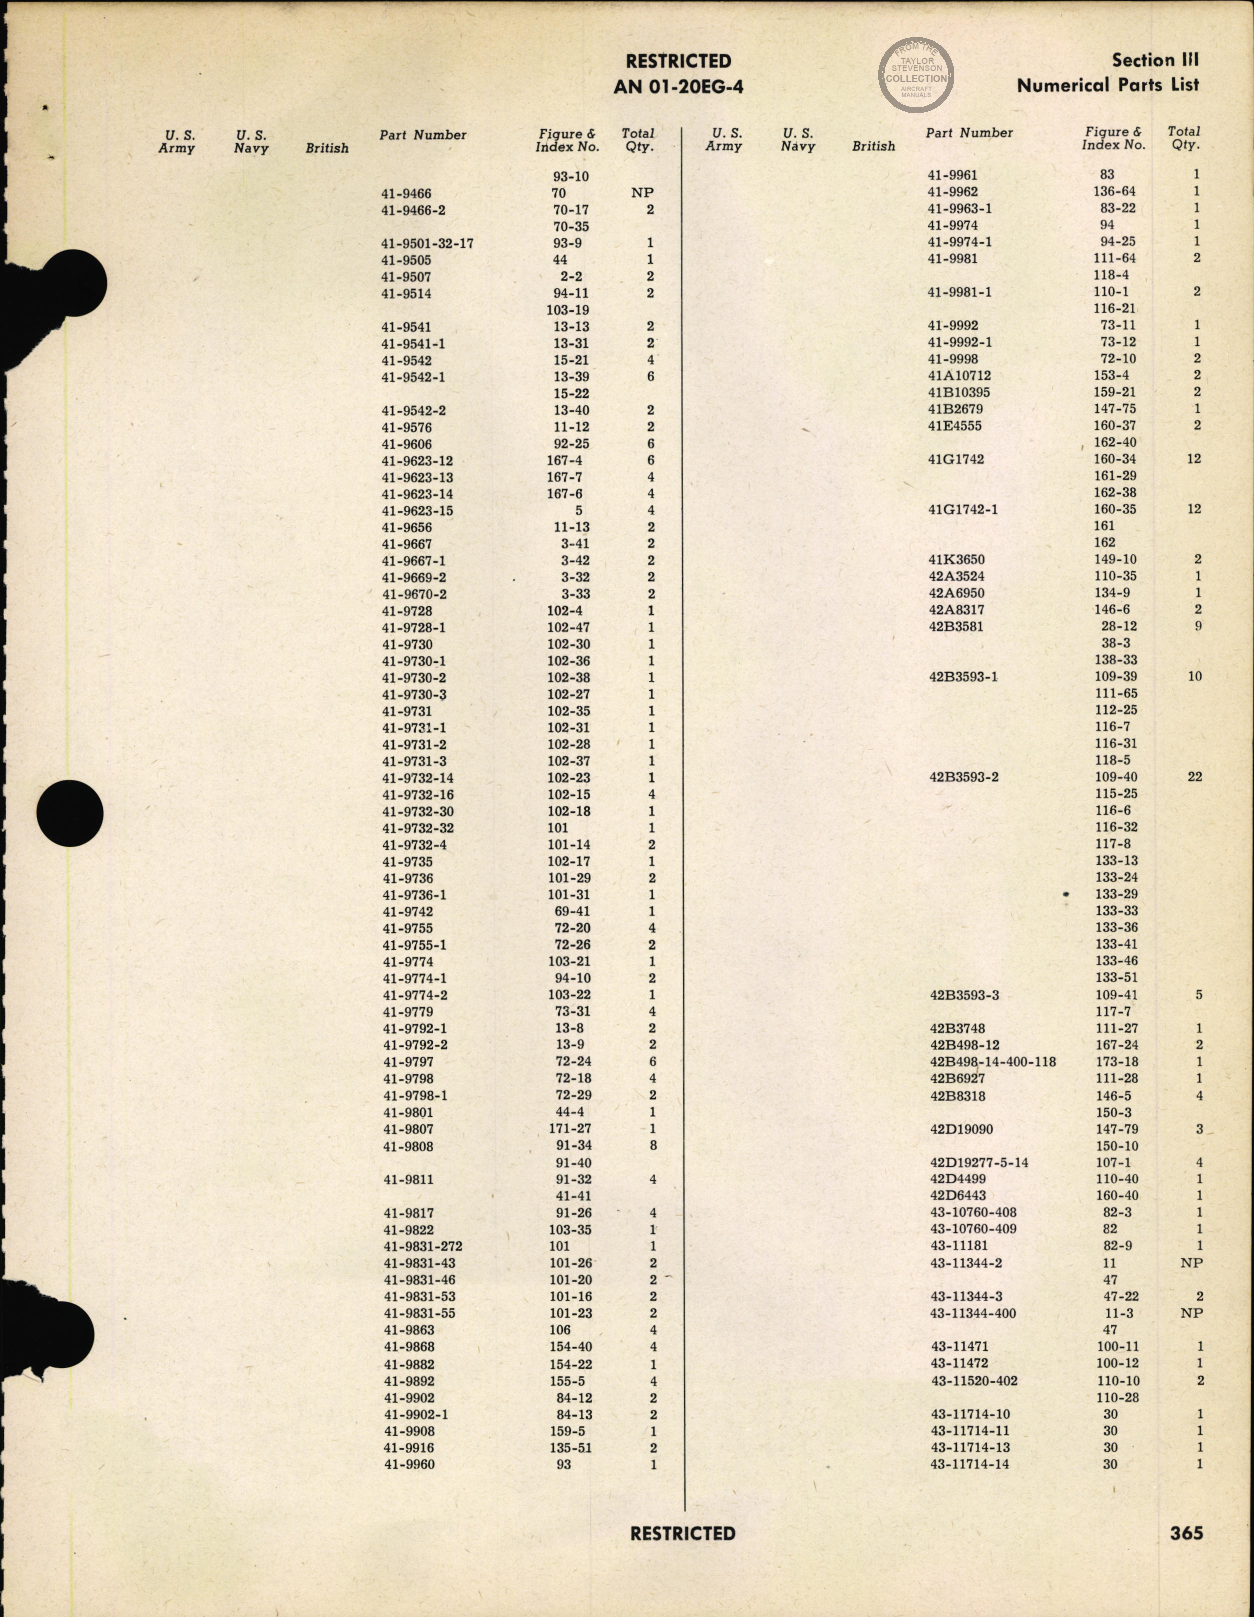 Sample page 371 from AirCorps Library document: Parts Catalog - B-17